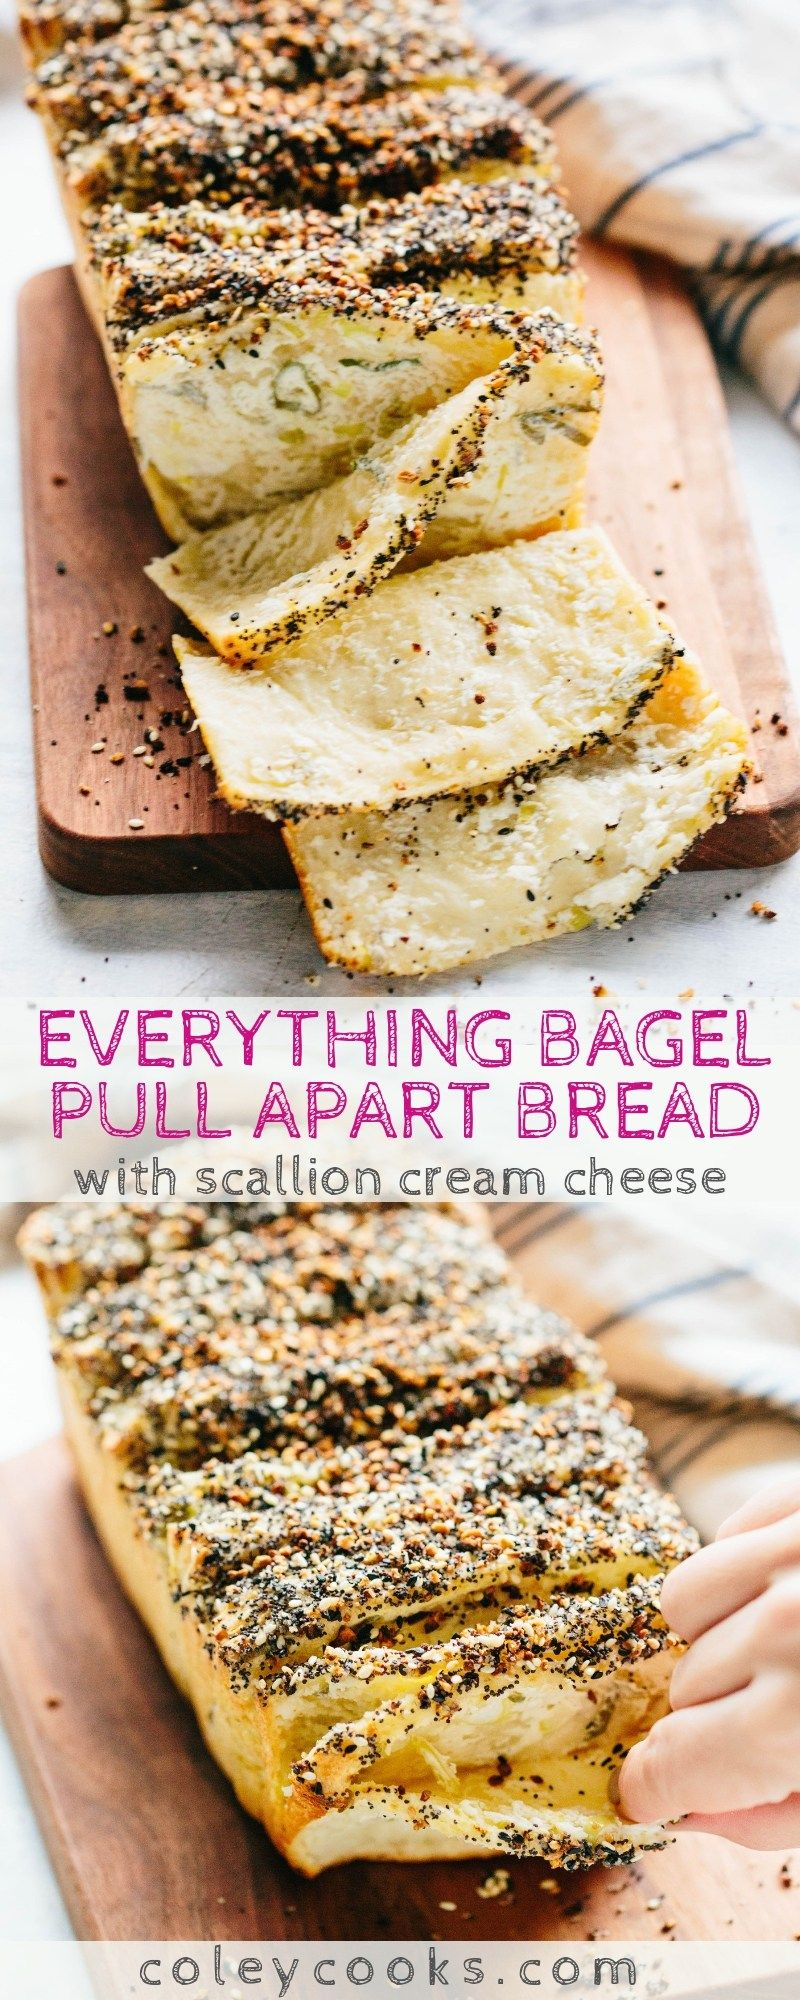 Everything Bagel Pull Apart Bread with Scallion Cream Cheese | Coley Cooks...